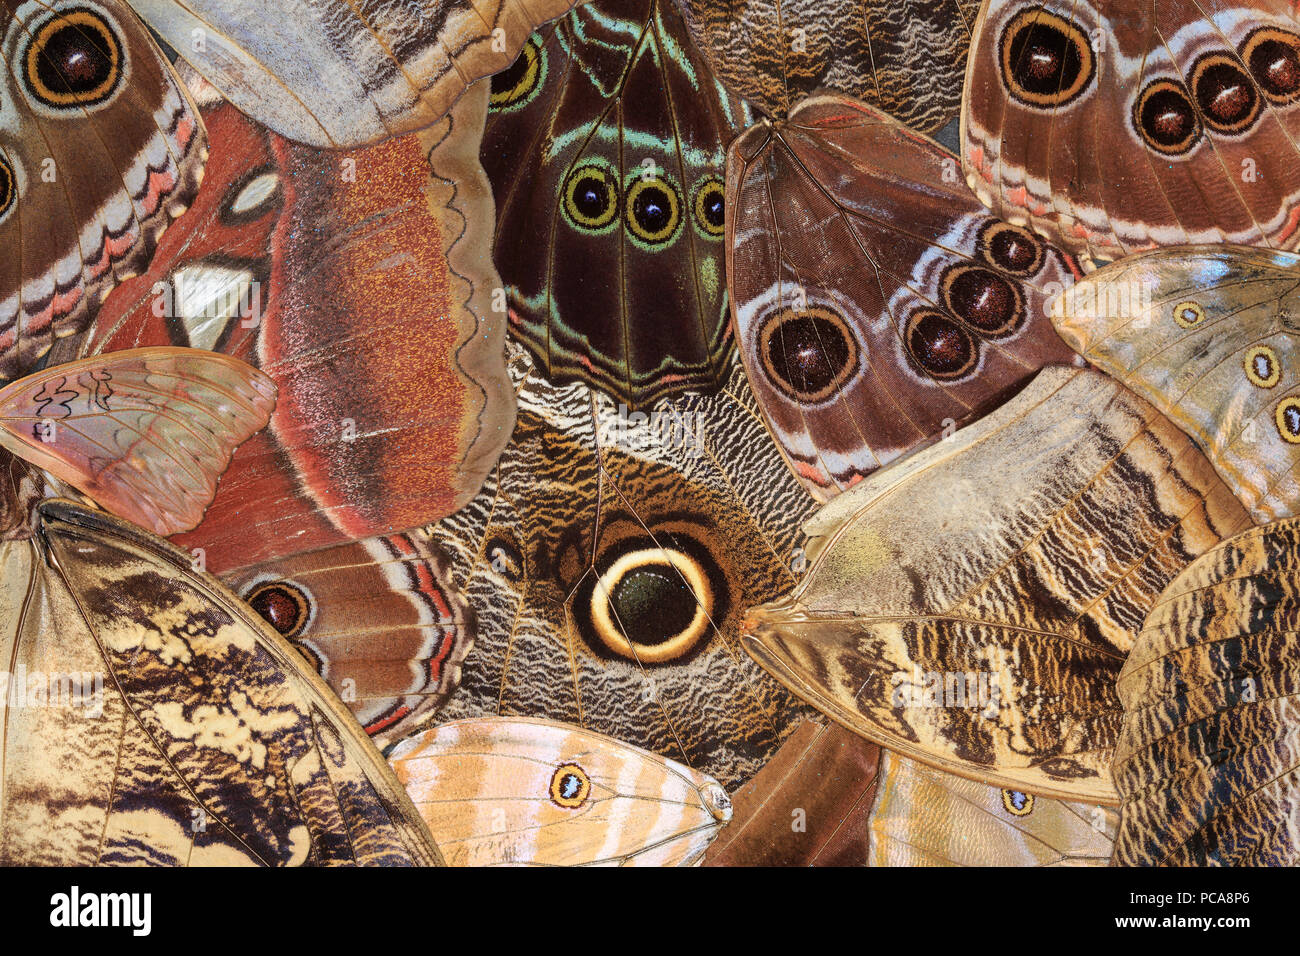 Assorted butterfly and moth wings arranged on a table. - Stock Image